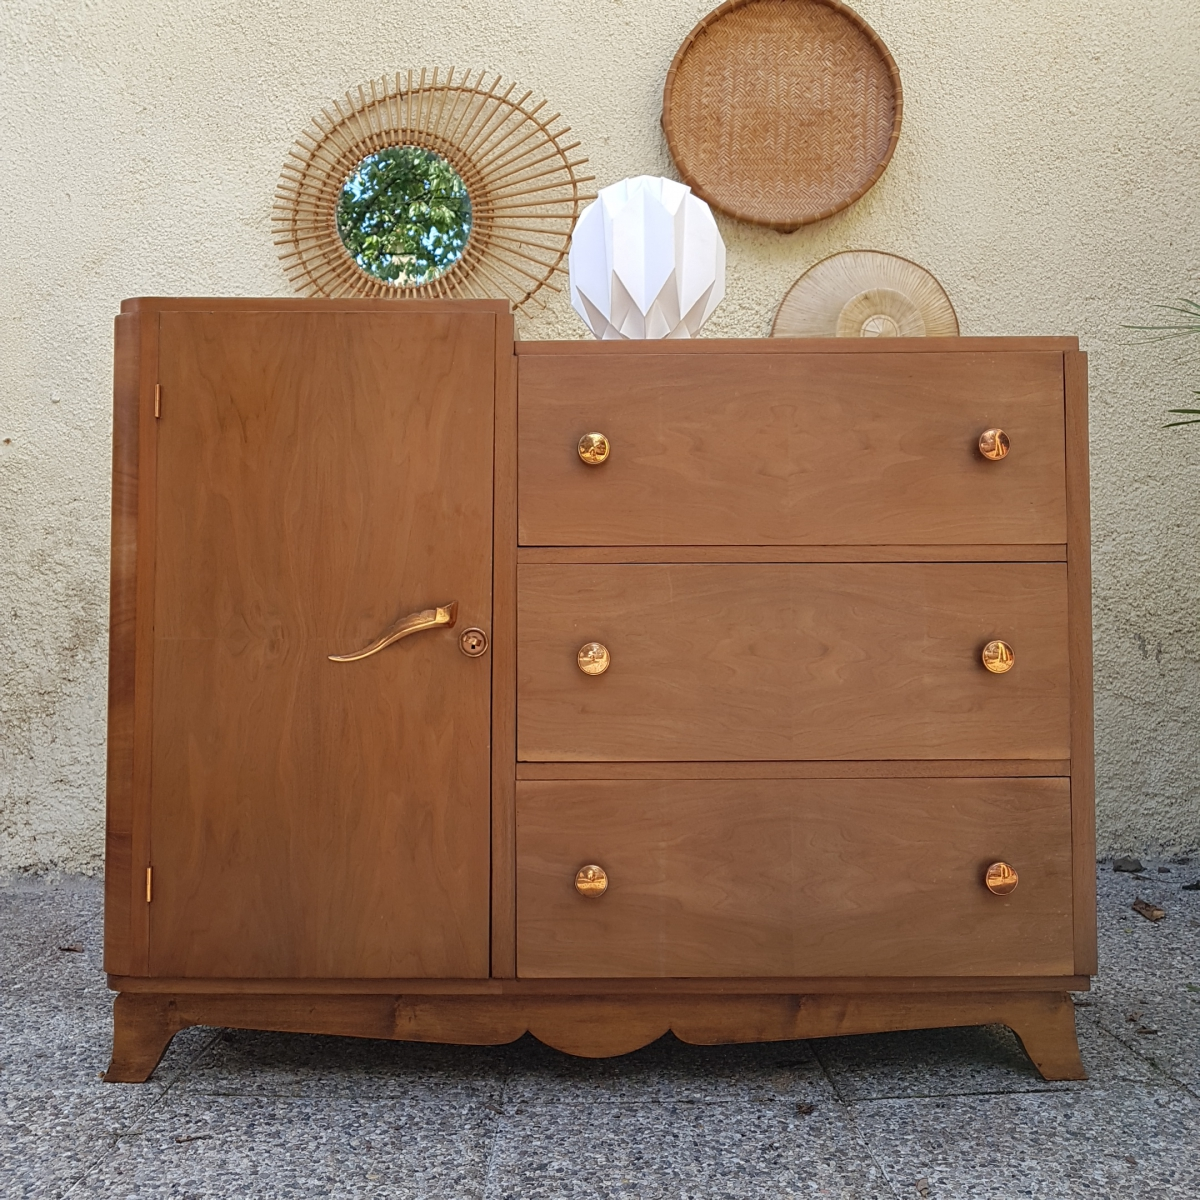 commode en bois vintage asym trique luckyfind. Black Bedroom Furniture Sets. Home Design Ideas